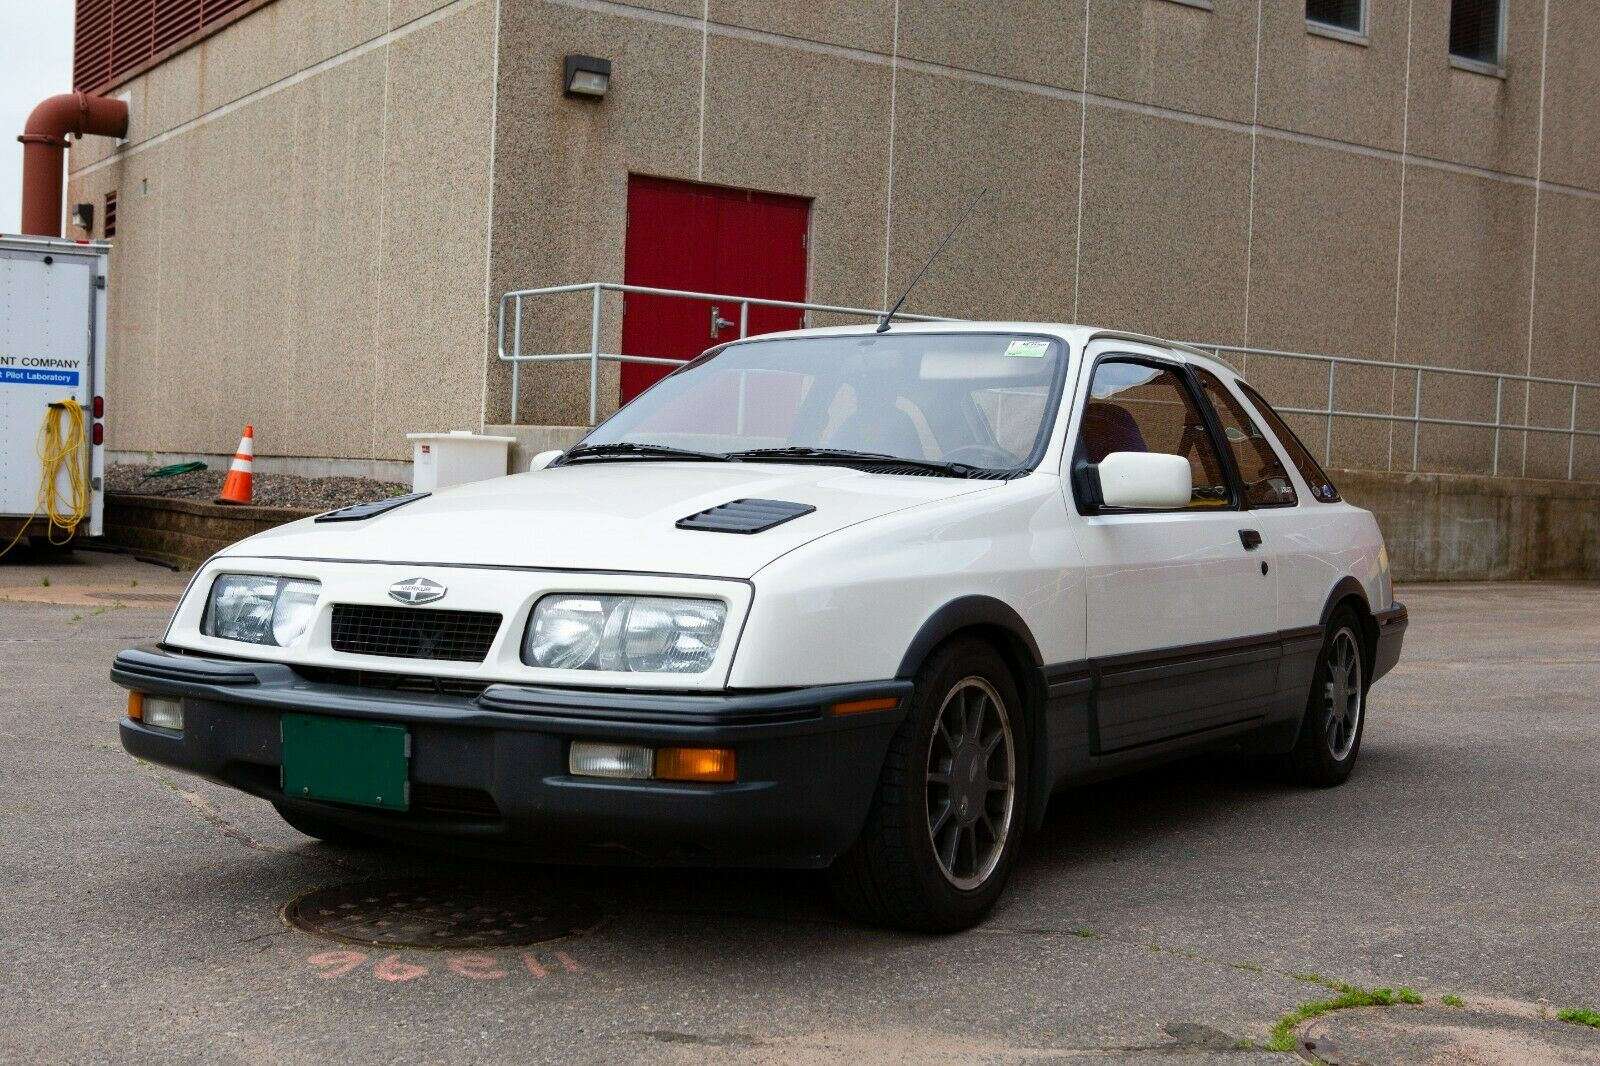 Autocross Special: A 1987 Merkur XR4Ti That's Done! Are You A Fan Of Boosted Fords?